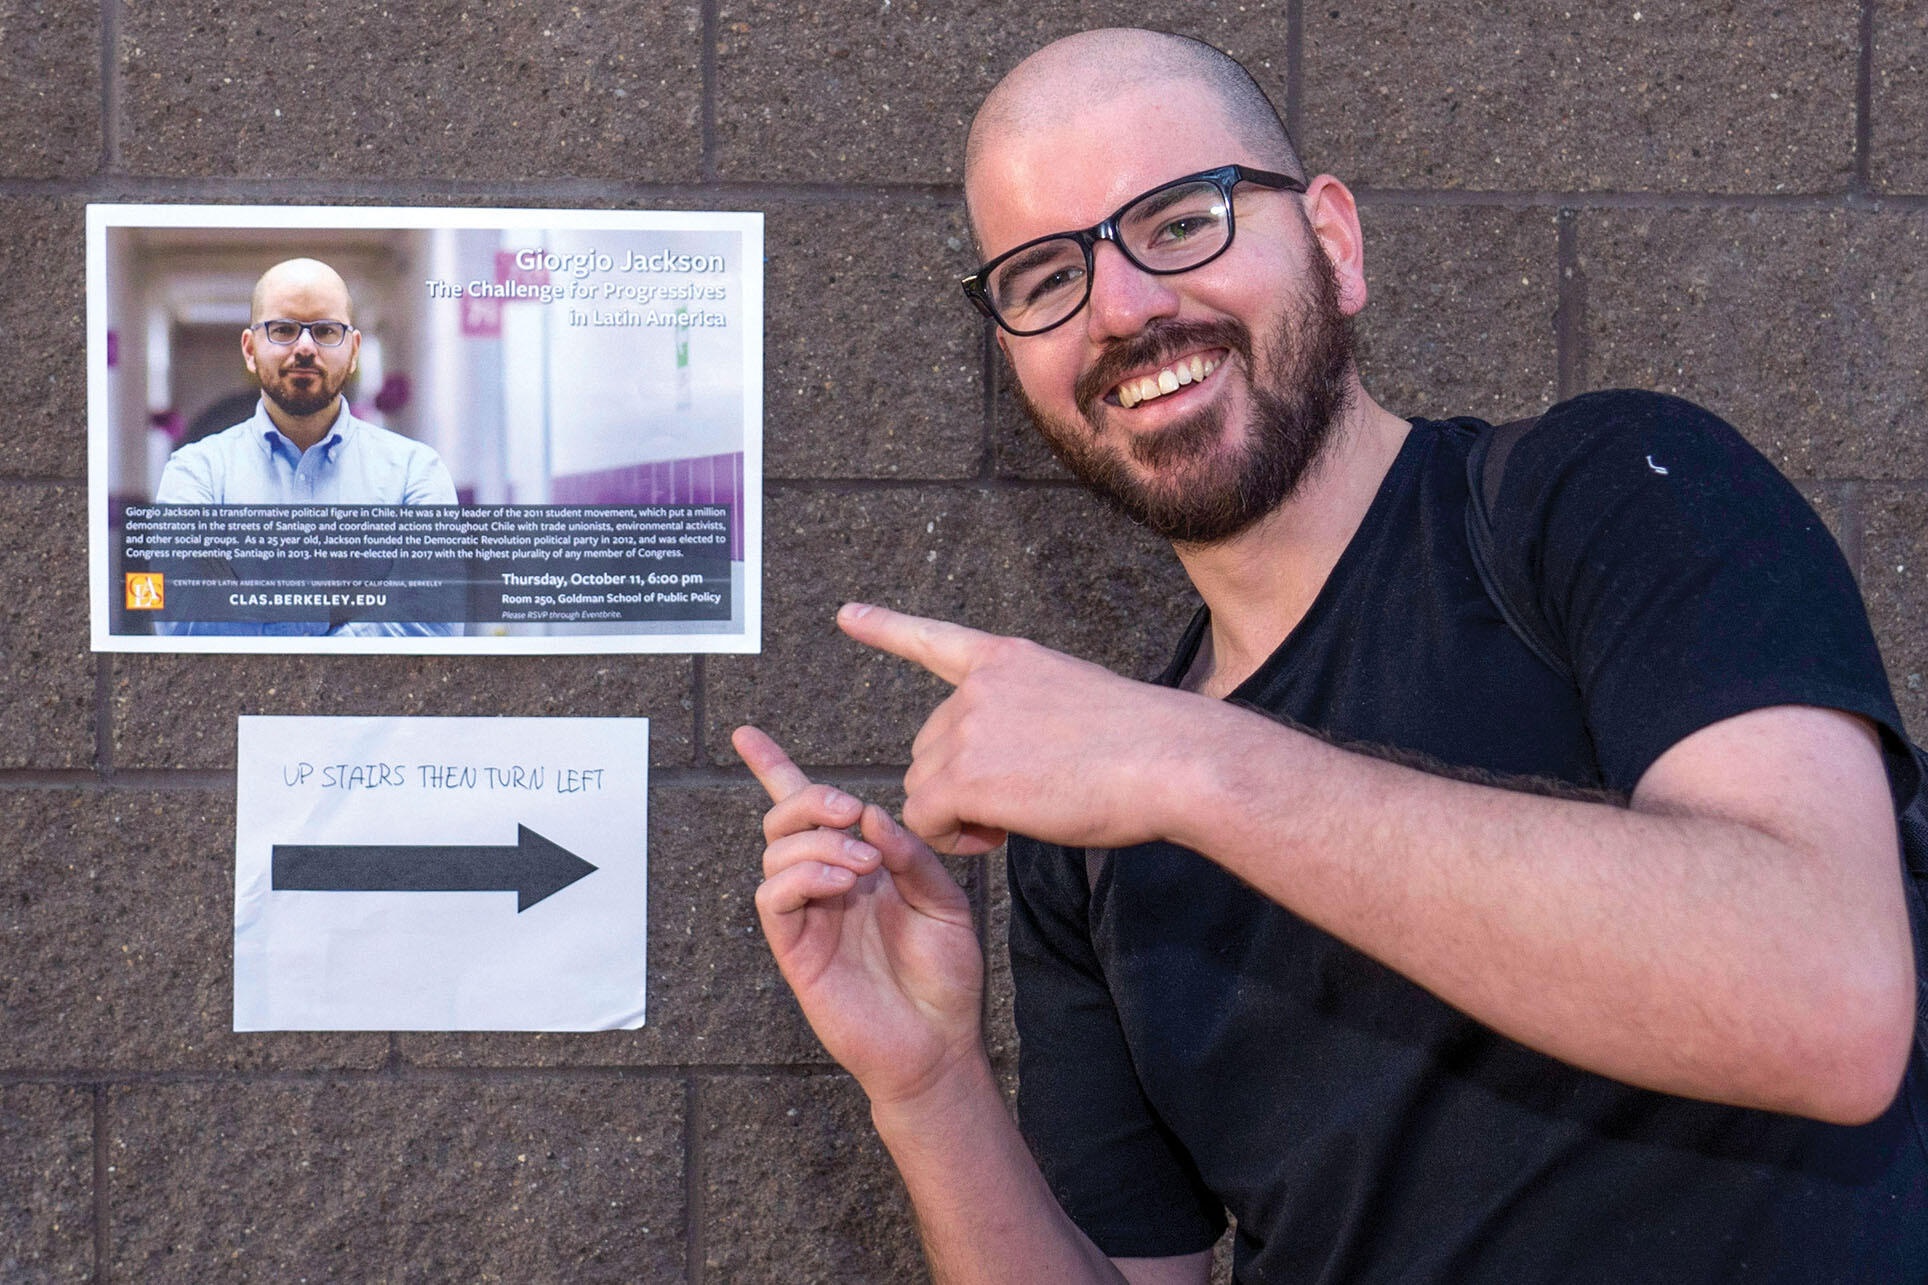 Giorgio Jackson with a poster advertising his talk at Berkeley, October 2018. (Photo by Jim Block.)